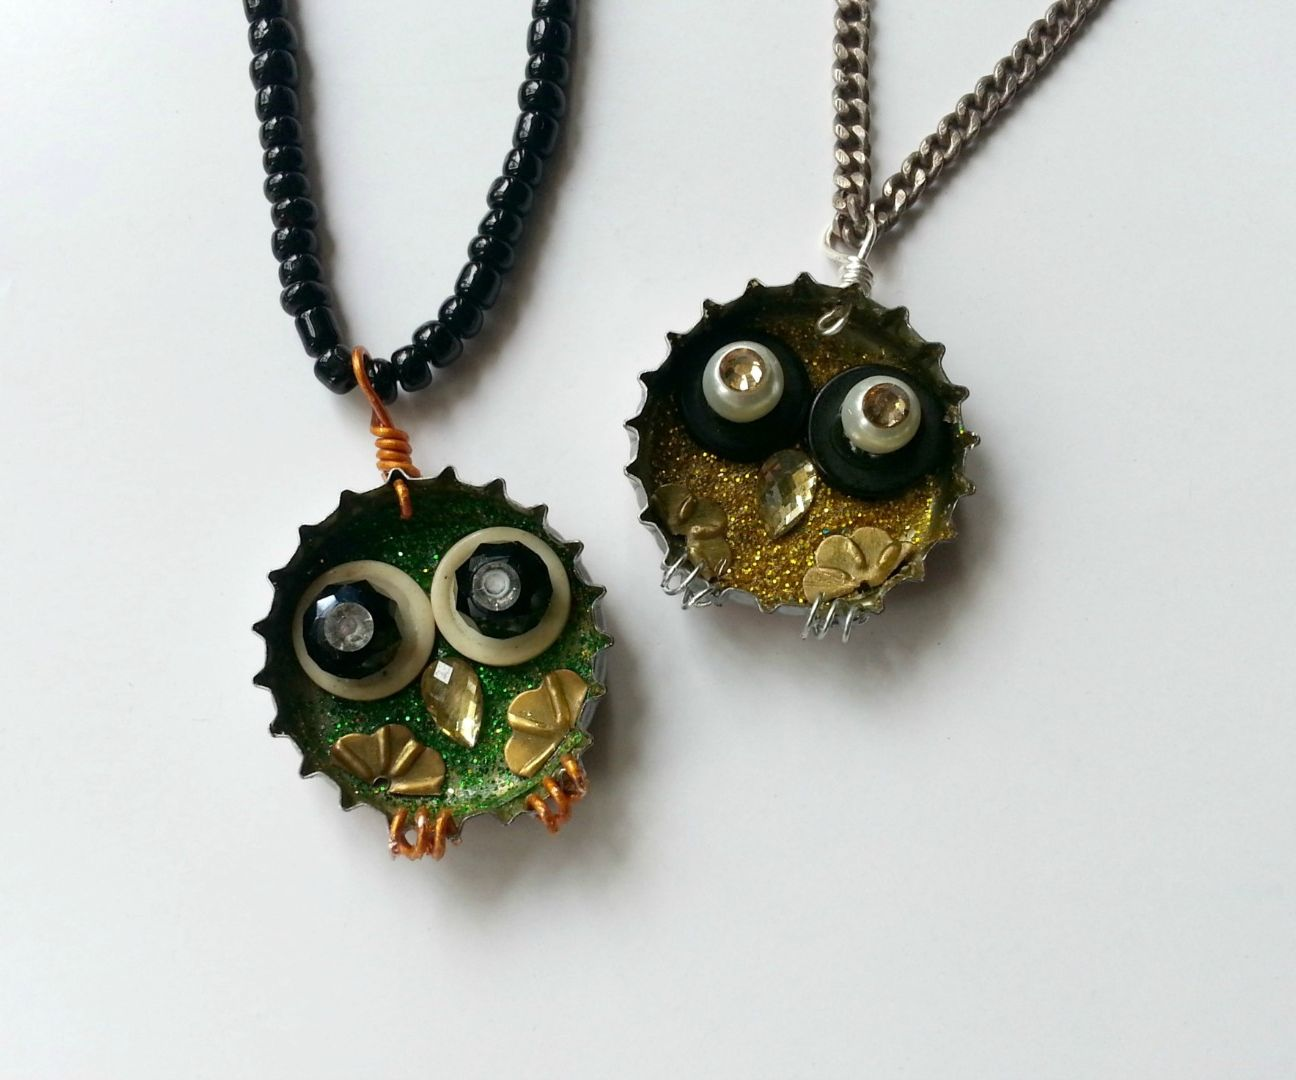 DIY Owl Pendant from Junk